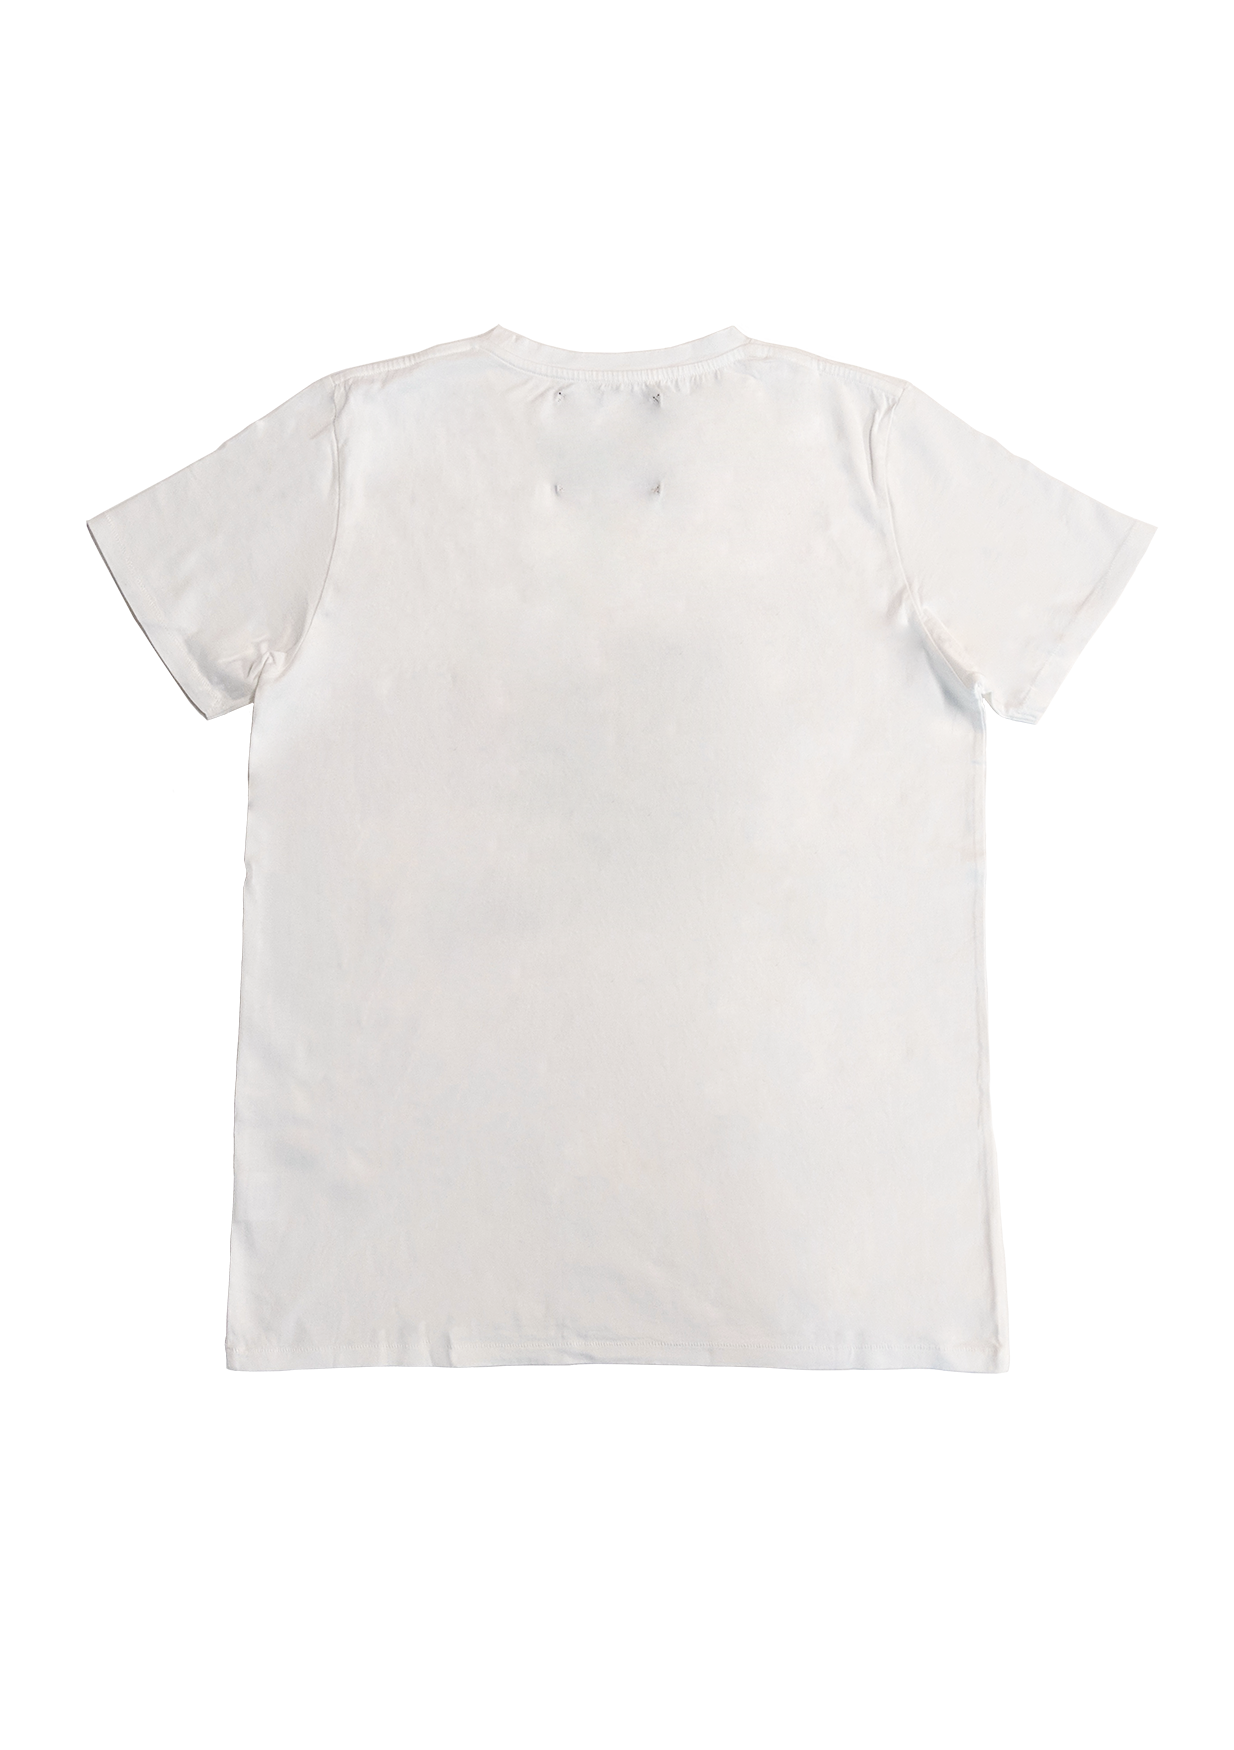 SS16 'KILLING IT' tee - white